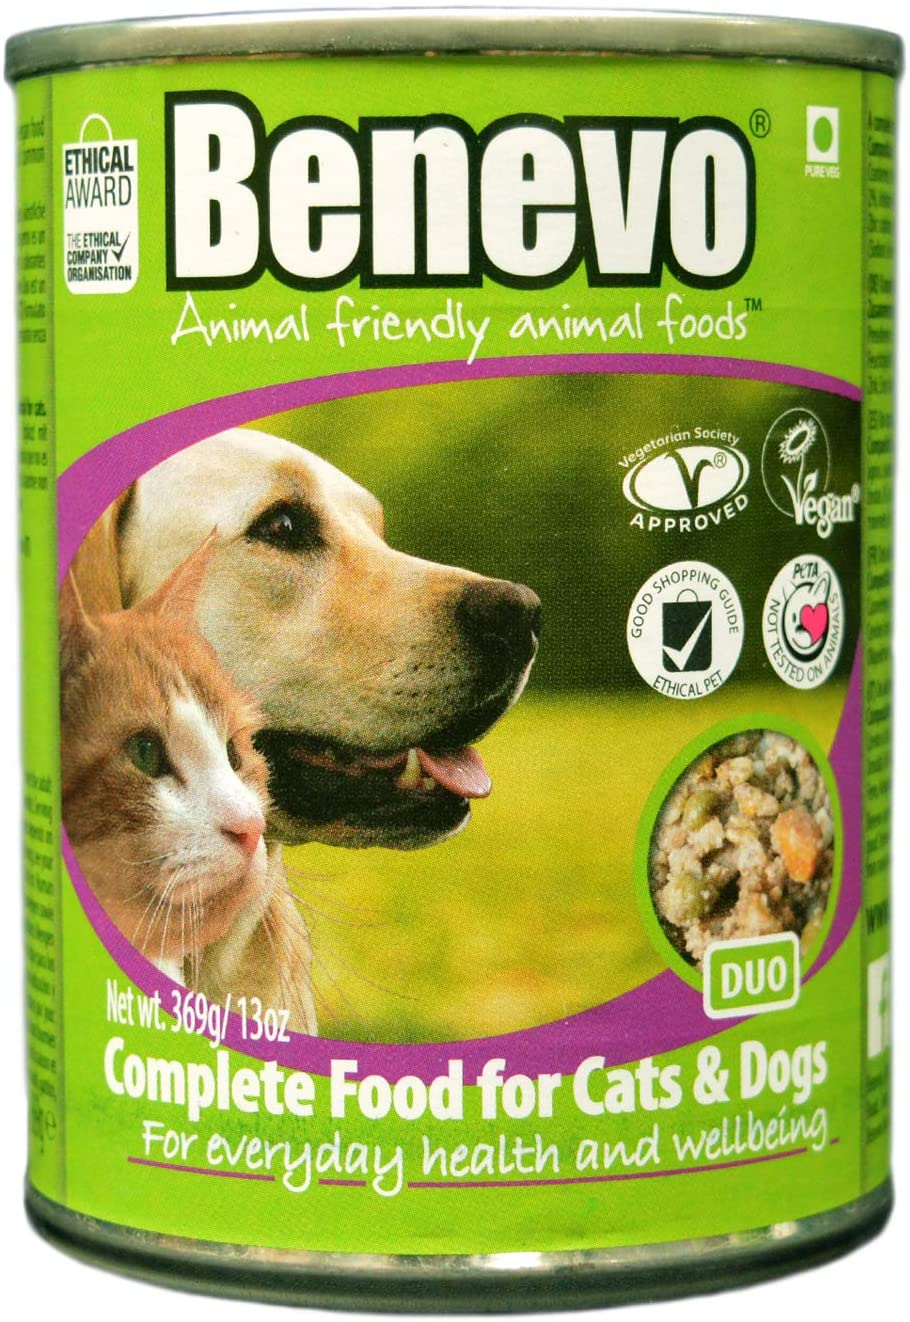 Duo Complete Food for Cats and Dogs, 369g